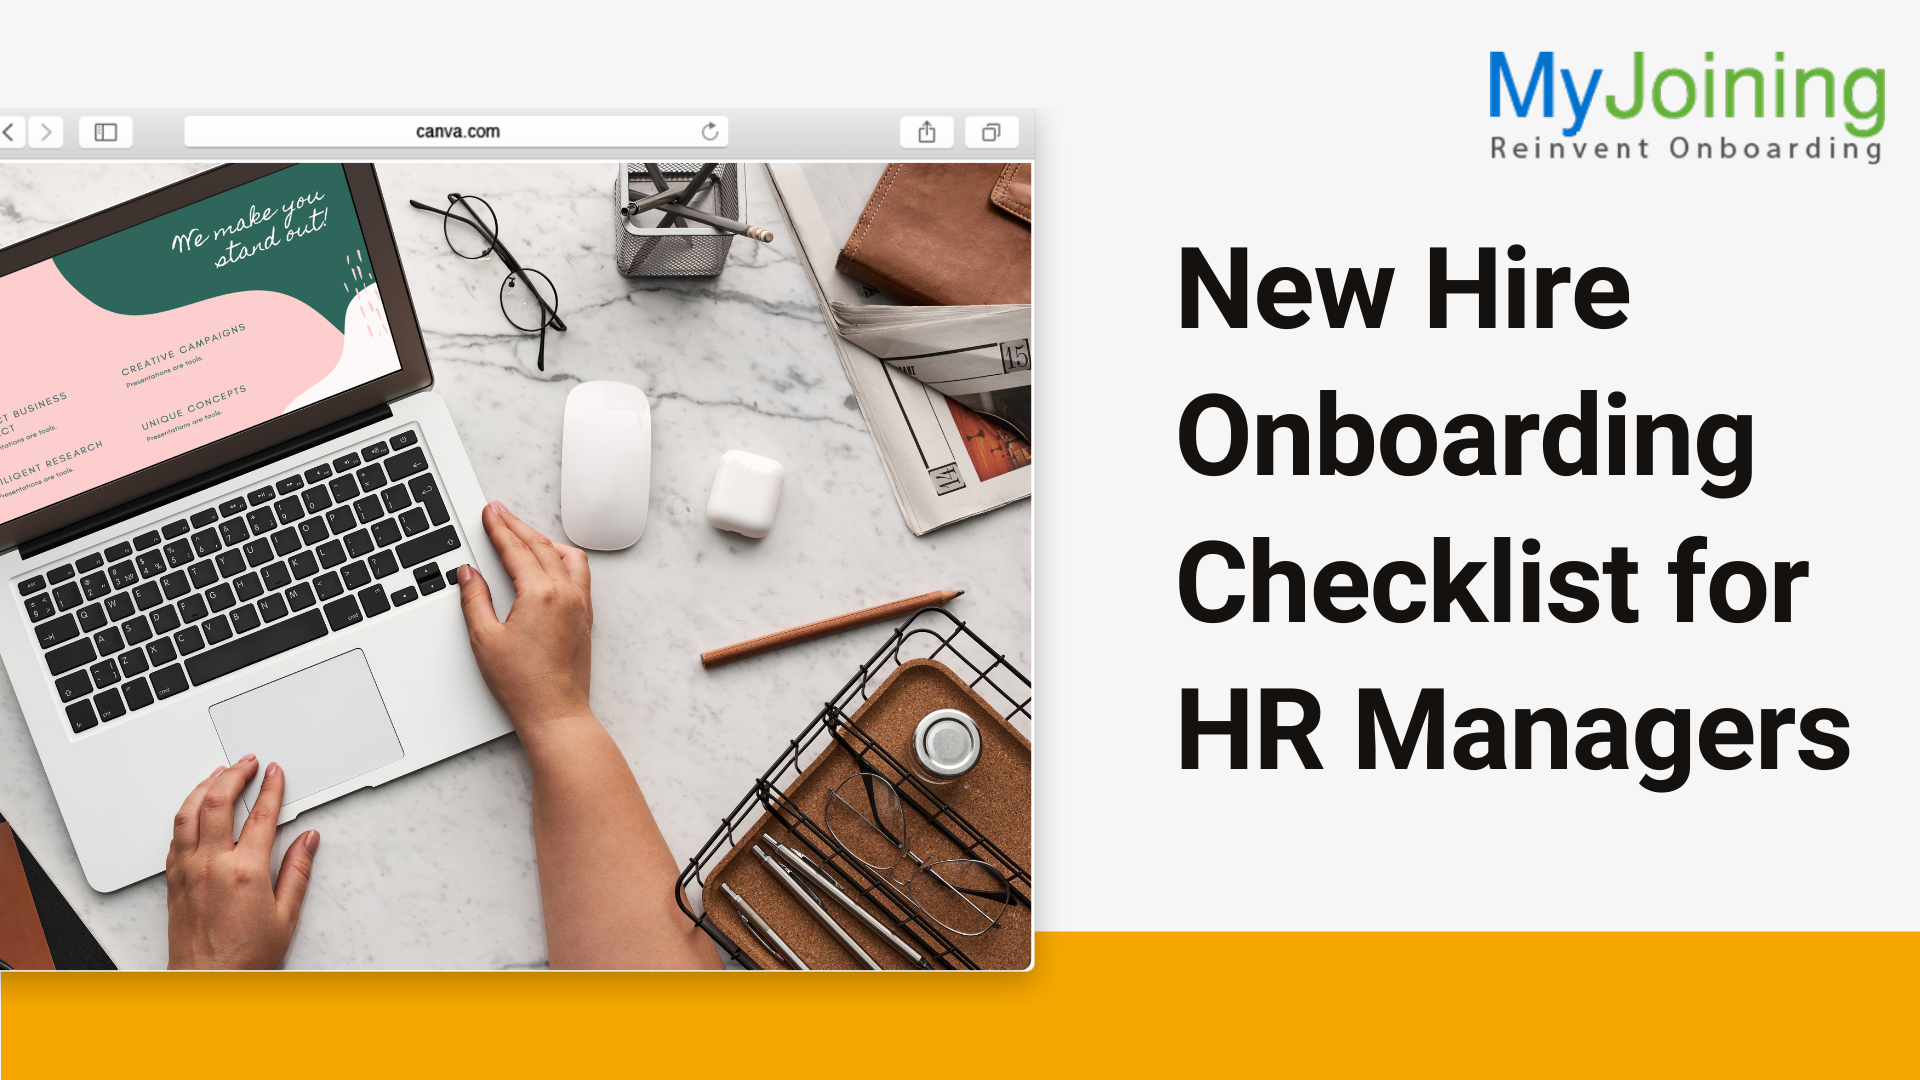 NewHire Onboarding Checklist for HR Managers